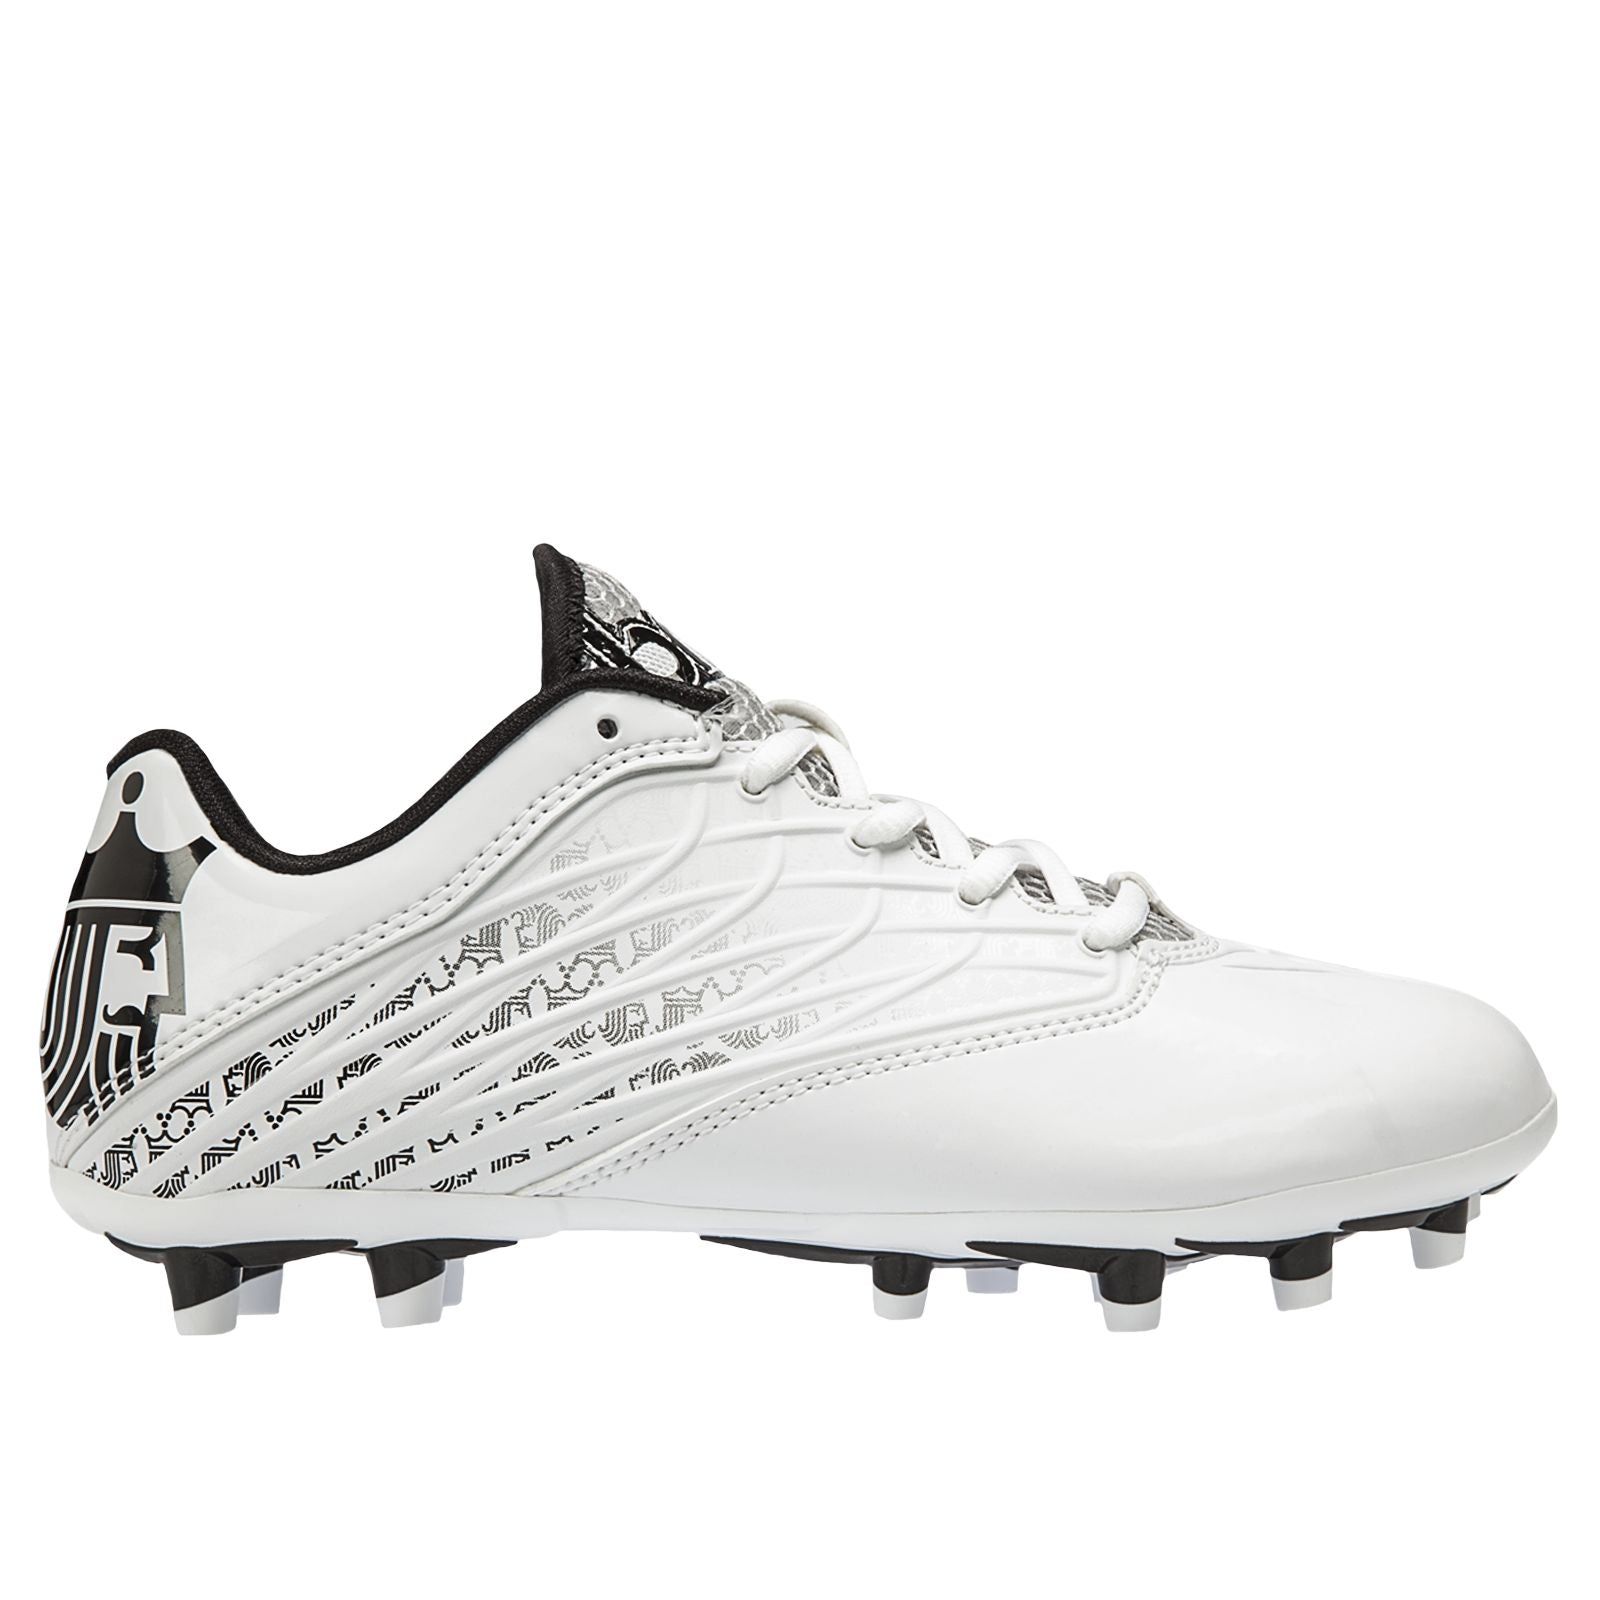 Women's Brine Empress - women's lacrosse cleats - Sports 4